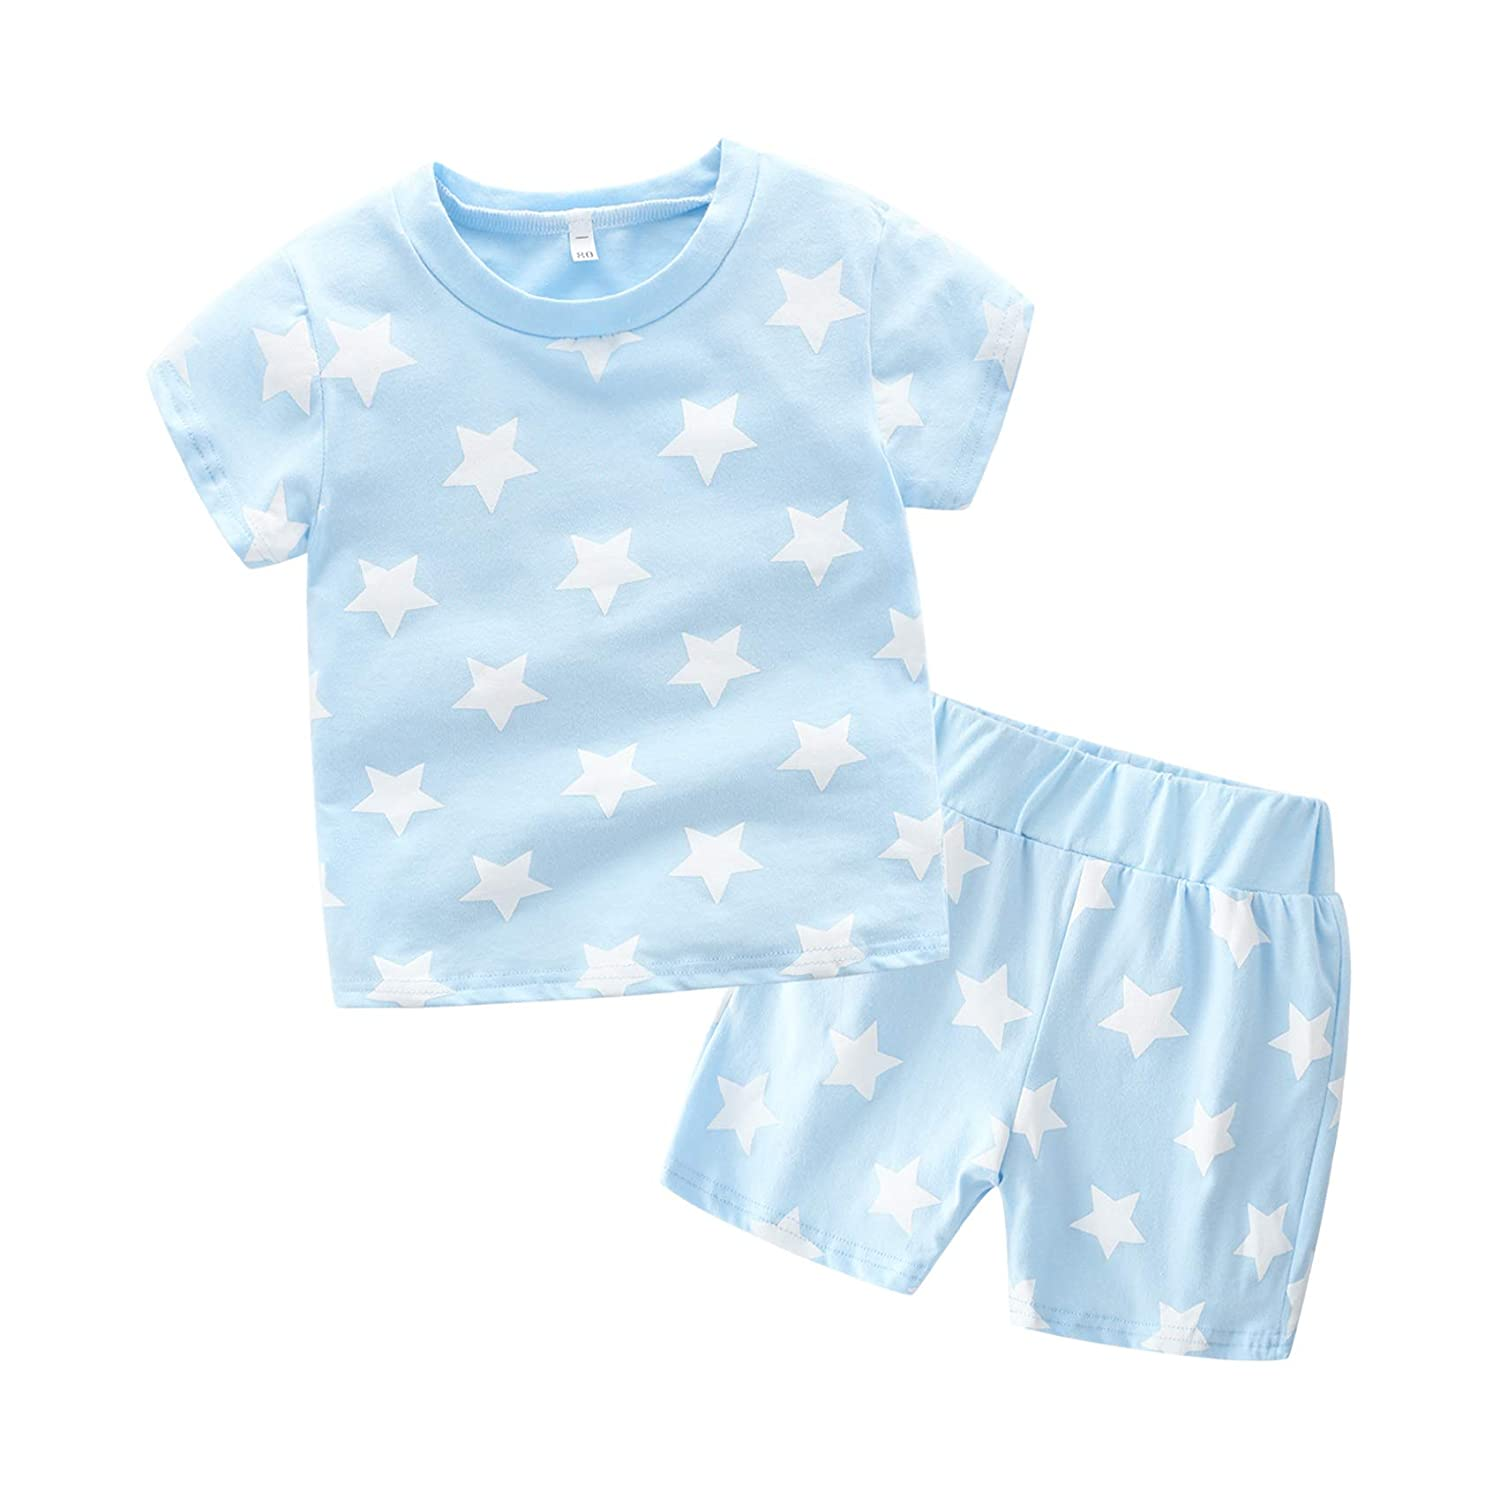 XINXINHAIHE Kid Boy Summer Casual Set 2pcs Stripe Star Print T-Shirt Top+Elastic Shorts